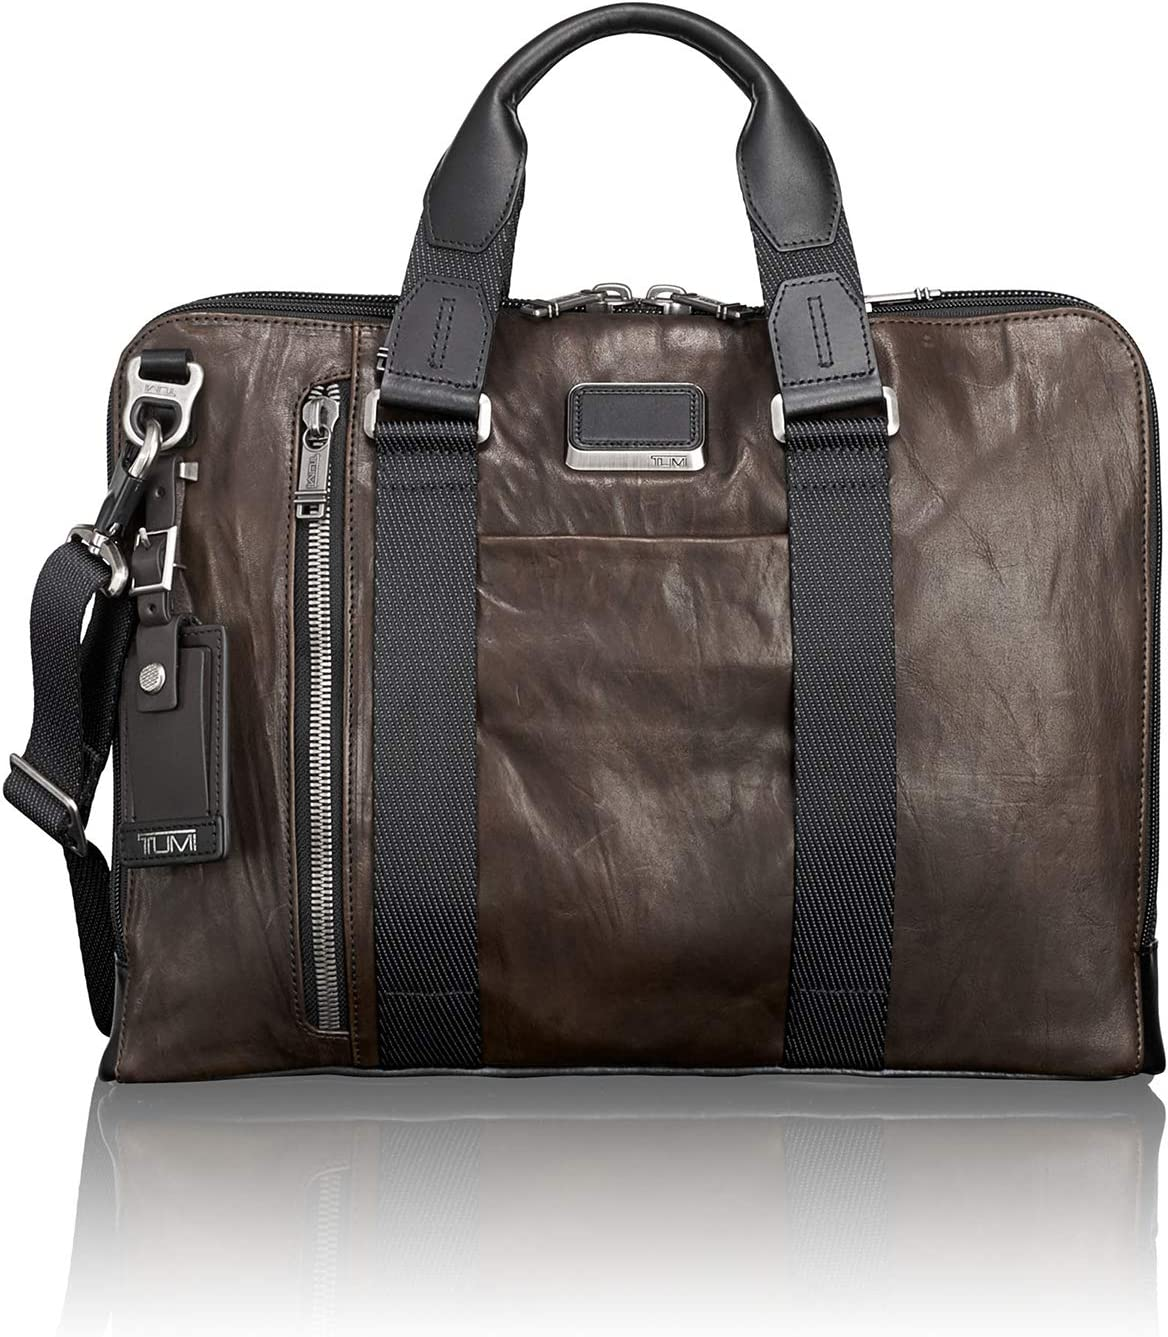 TUMI – Alpha Bravo Aviano Leather Laptop Slim Brief Briefcase – 15 Inch Computer Bag for Men and Women – Dark Brown